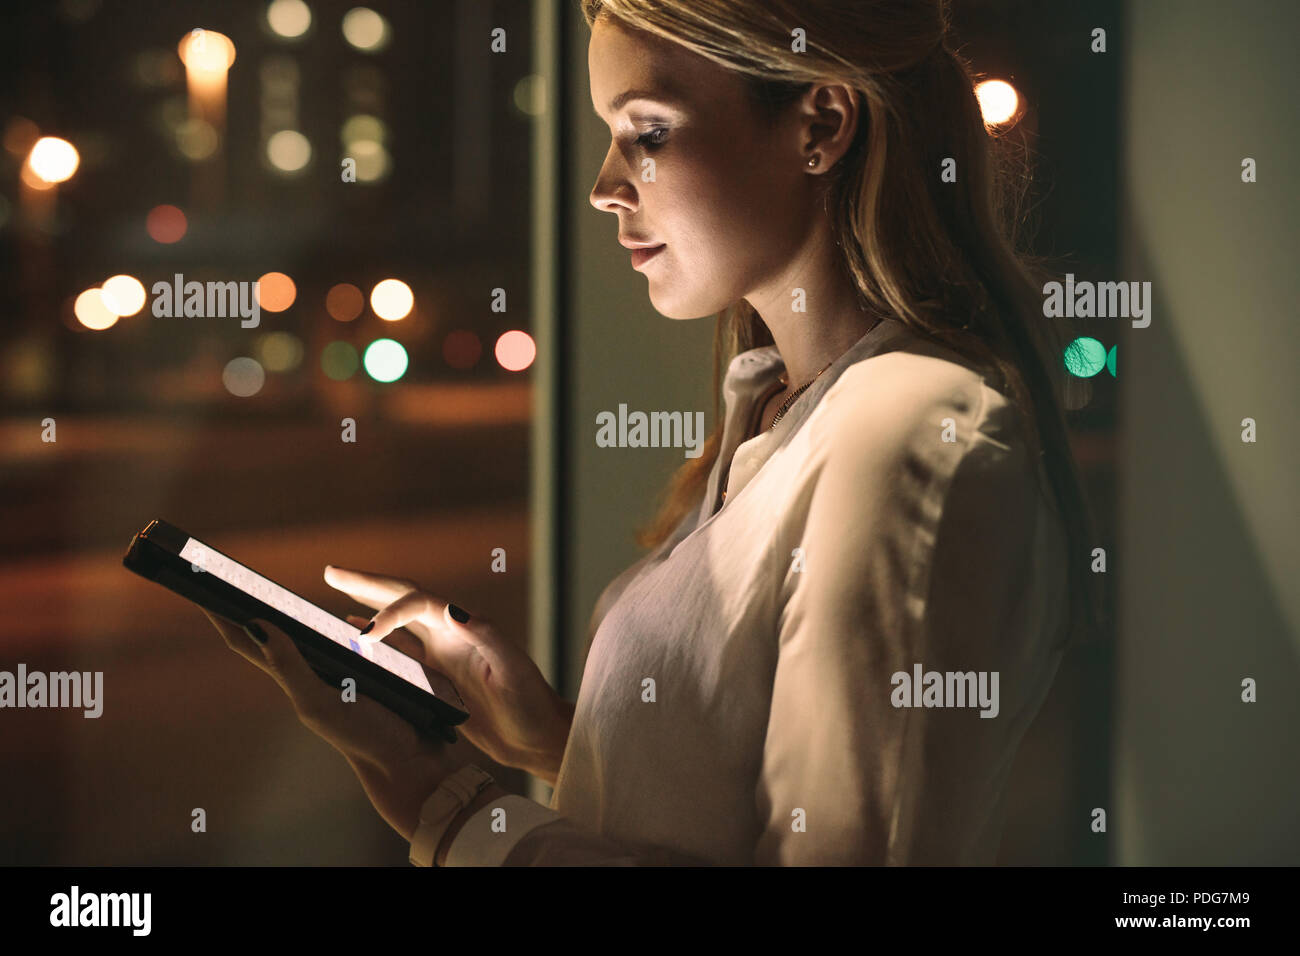 Close up of young businesswoman working on digital tablet in office. Beautiful female working late night in office. - Stock Image